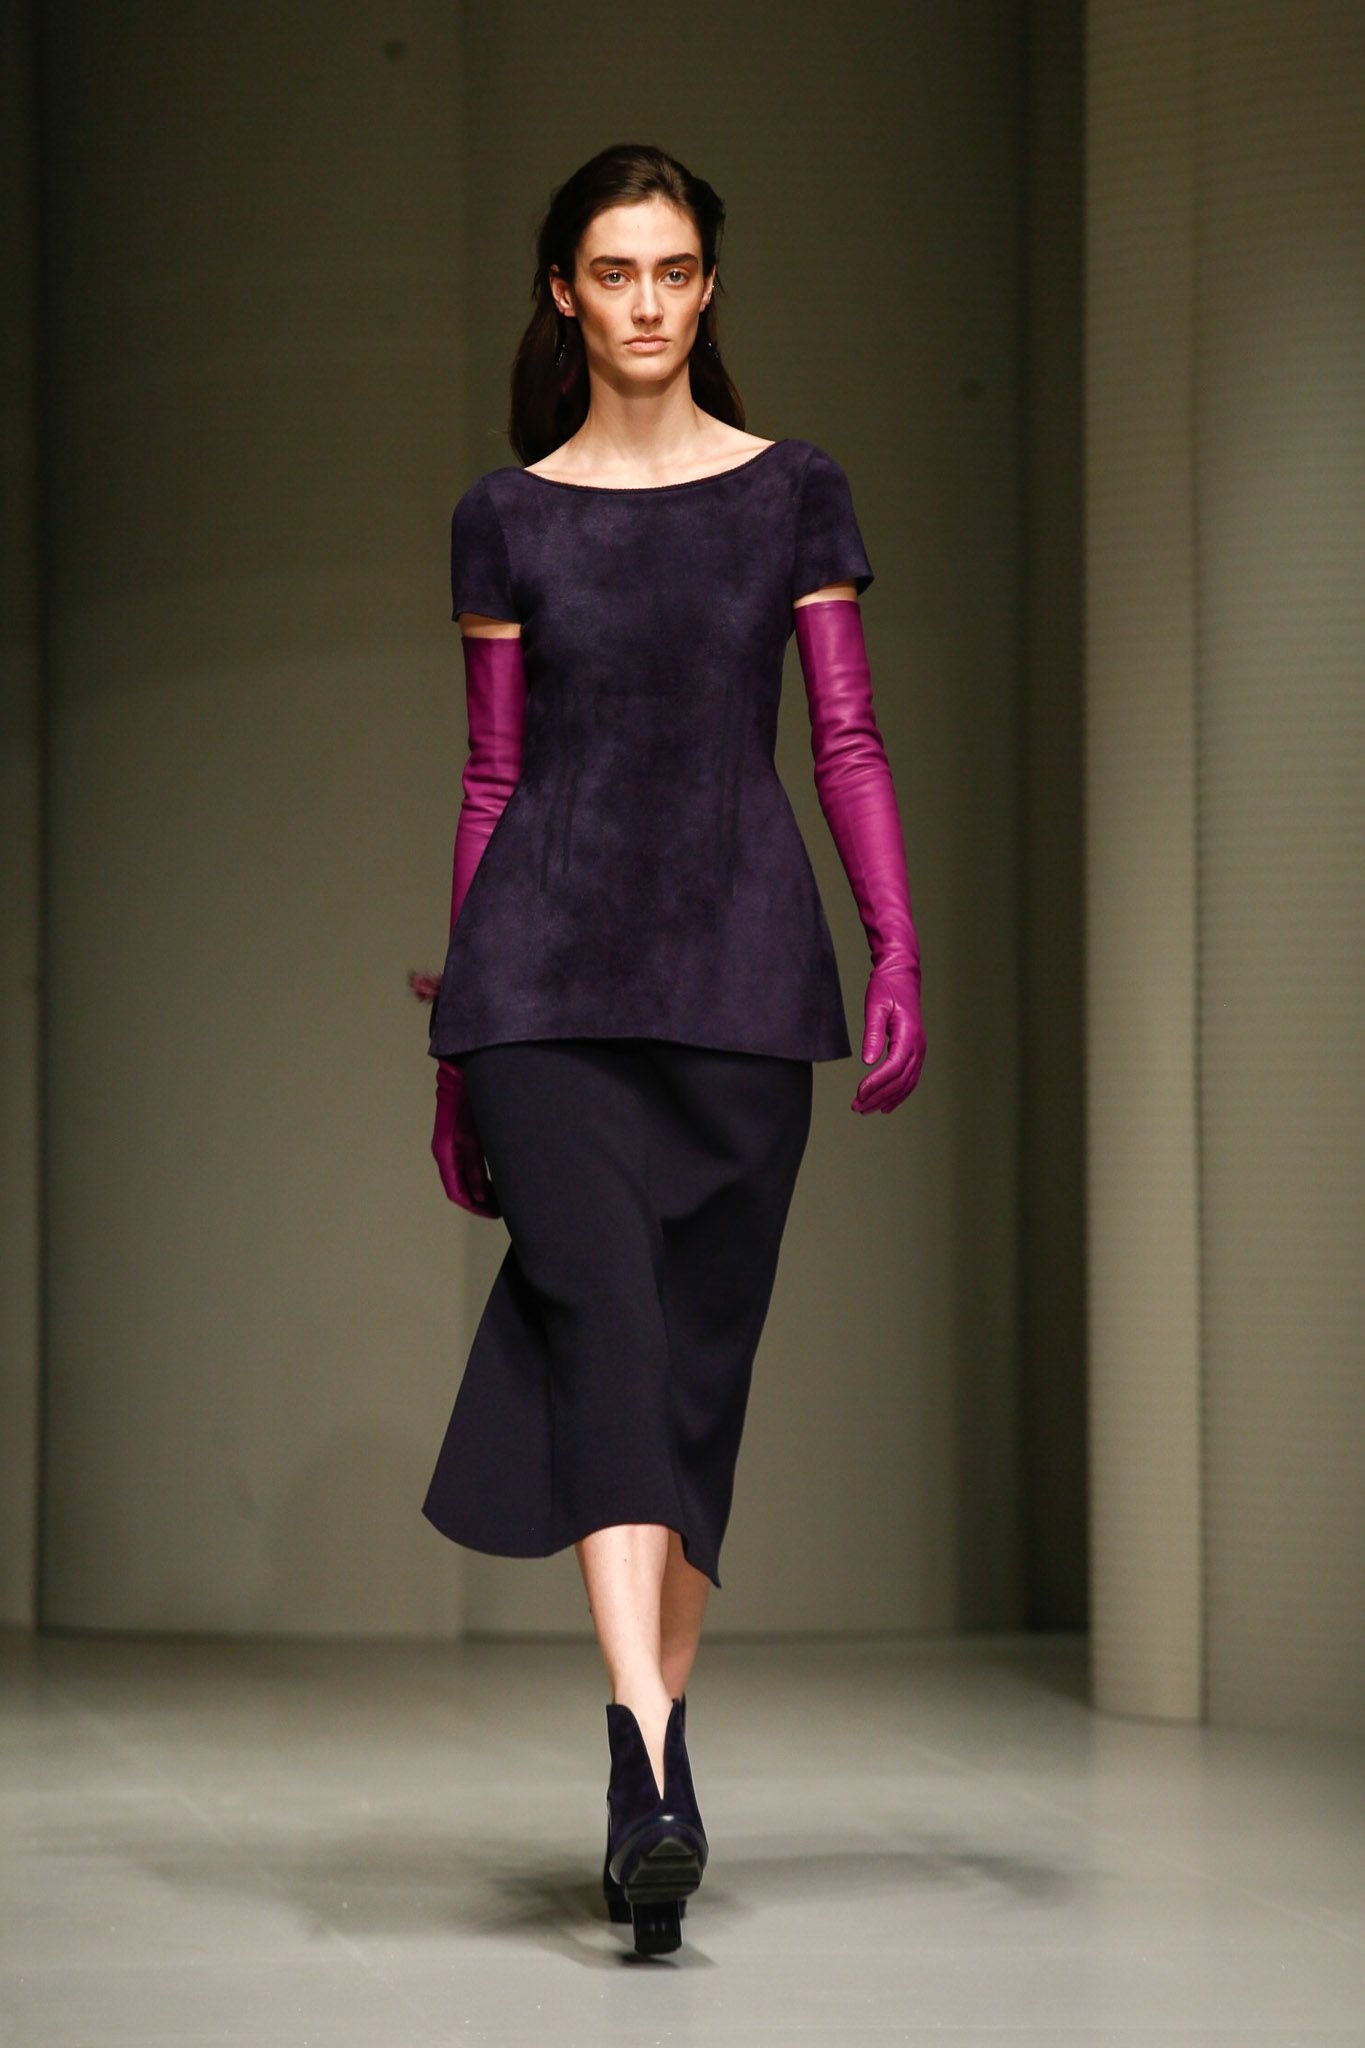 Salvatore Ferragamo's FW17 debut at MFW was filled with amazing structures, sleek cuts and vibrant hues.